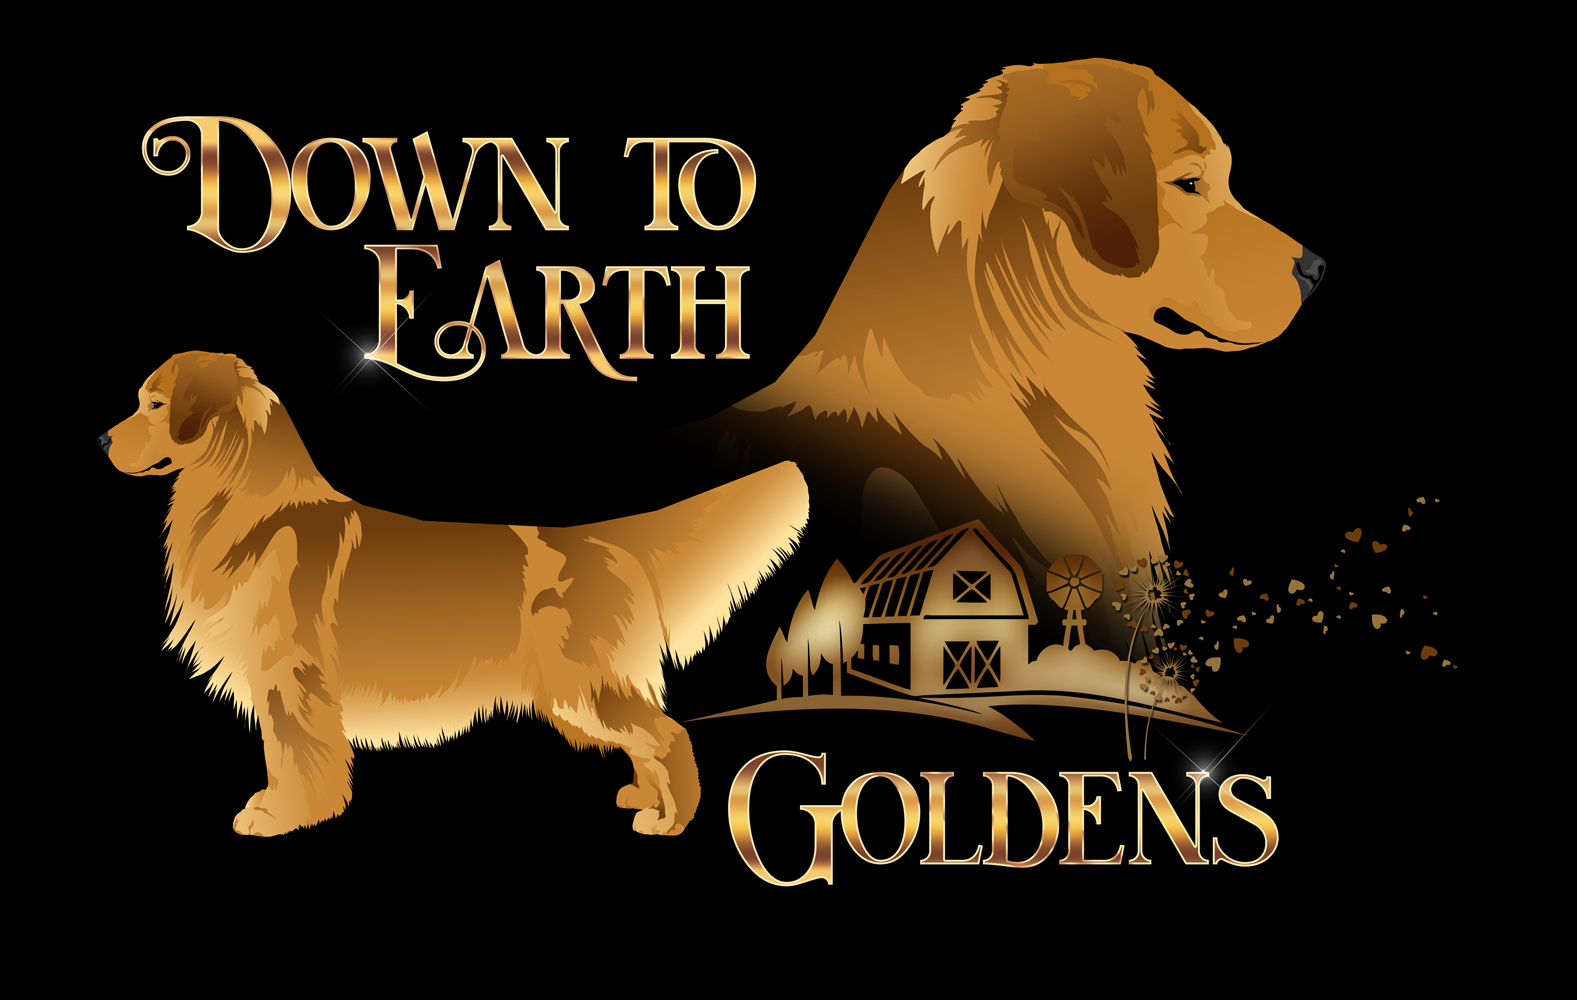 Down To Earth Goldens